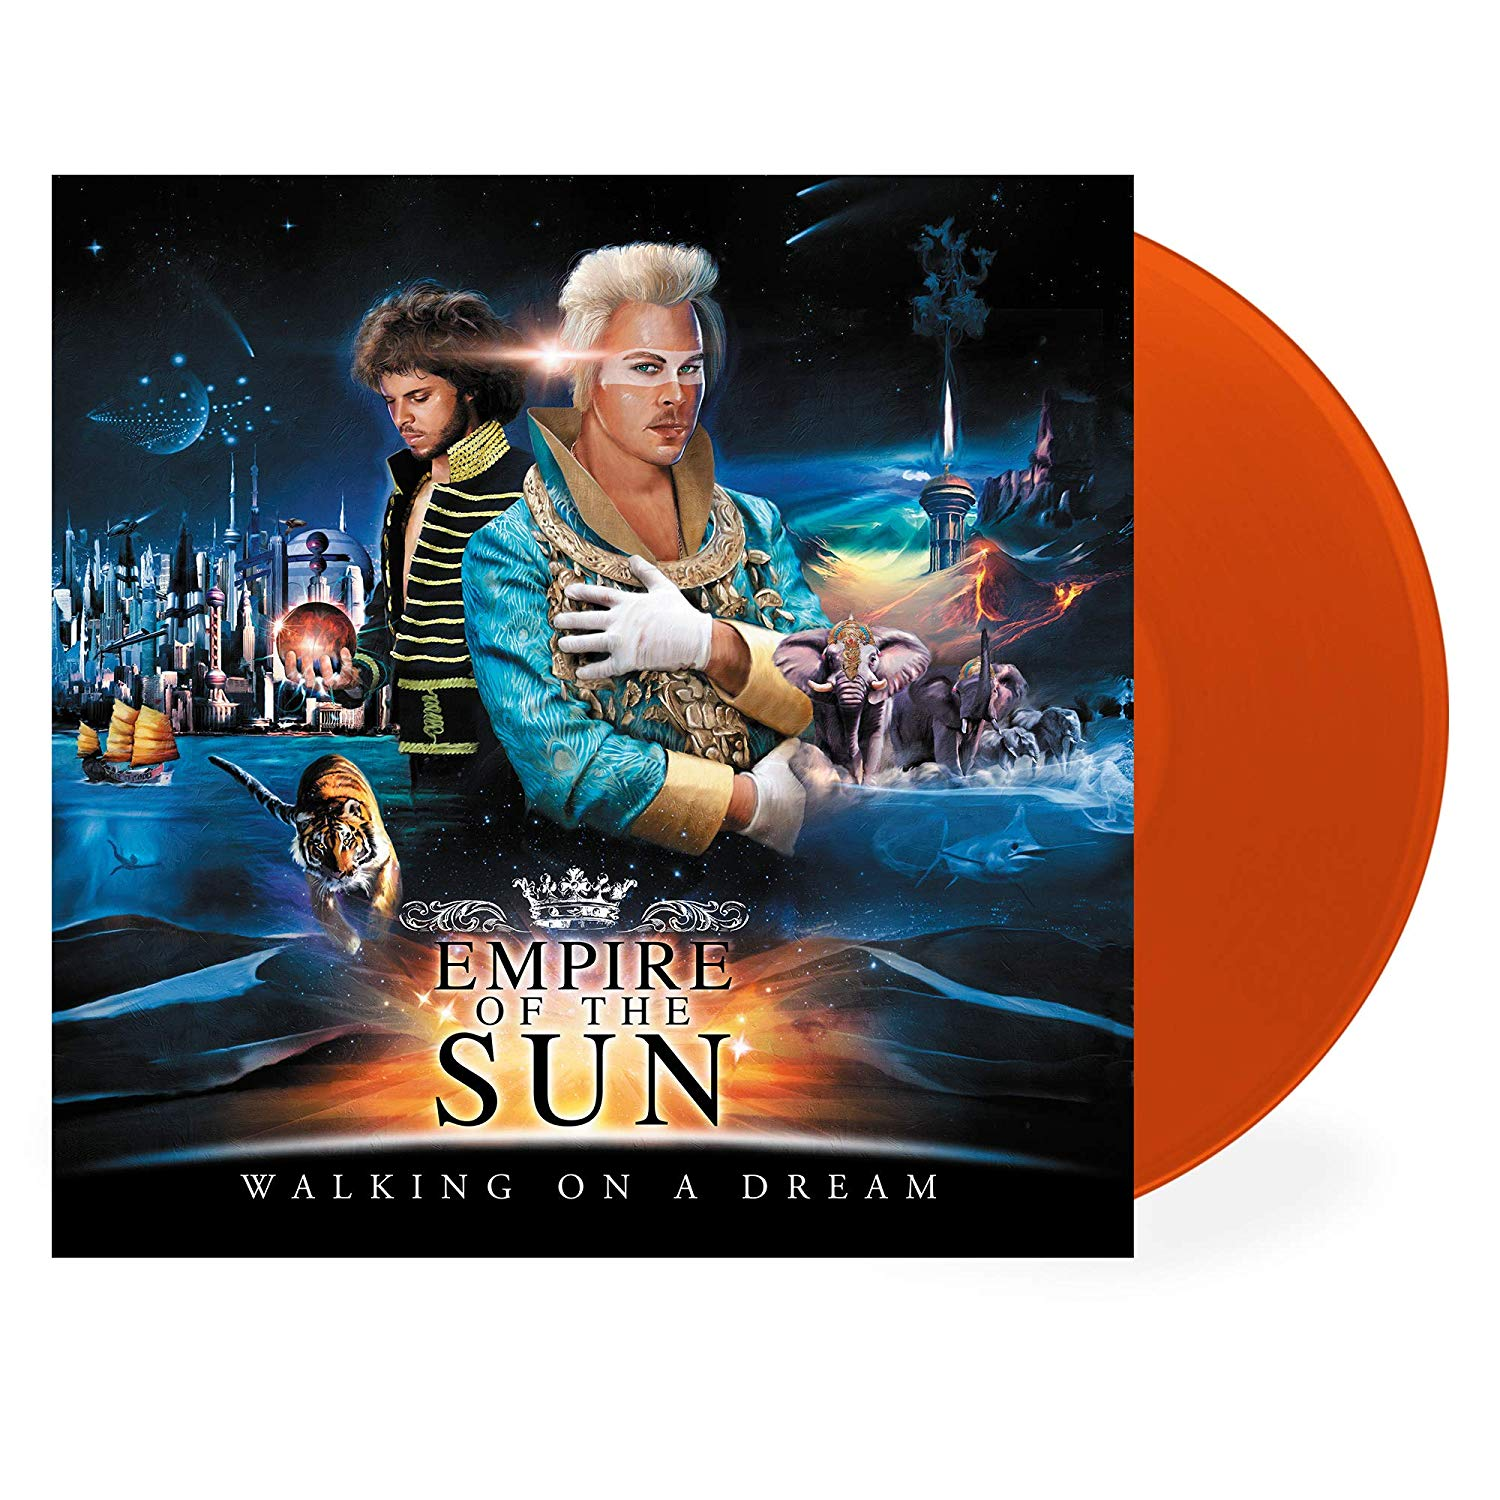 Empire Of The Sun - Walking On A Dream [LP] (10th Anniversary, 180 Gram, Transparent Blood Orange Colored Vinyl) - Urban Vinyl | Records, Headphones, and more.